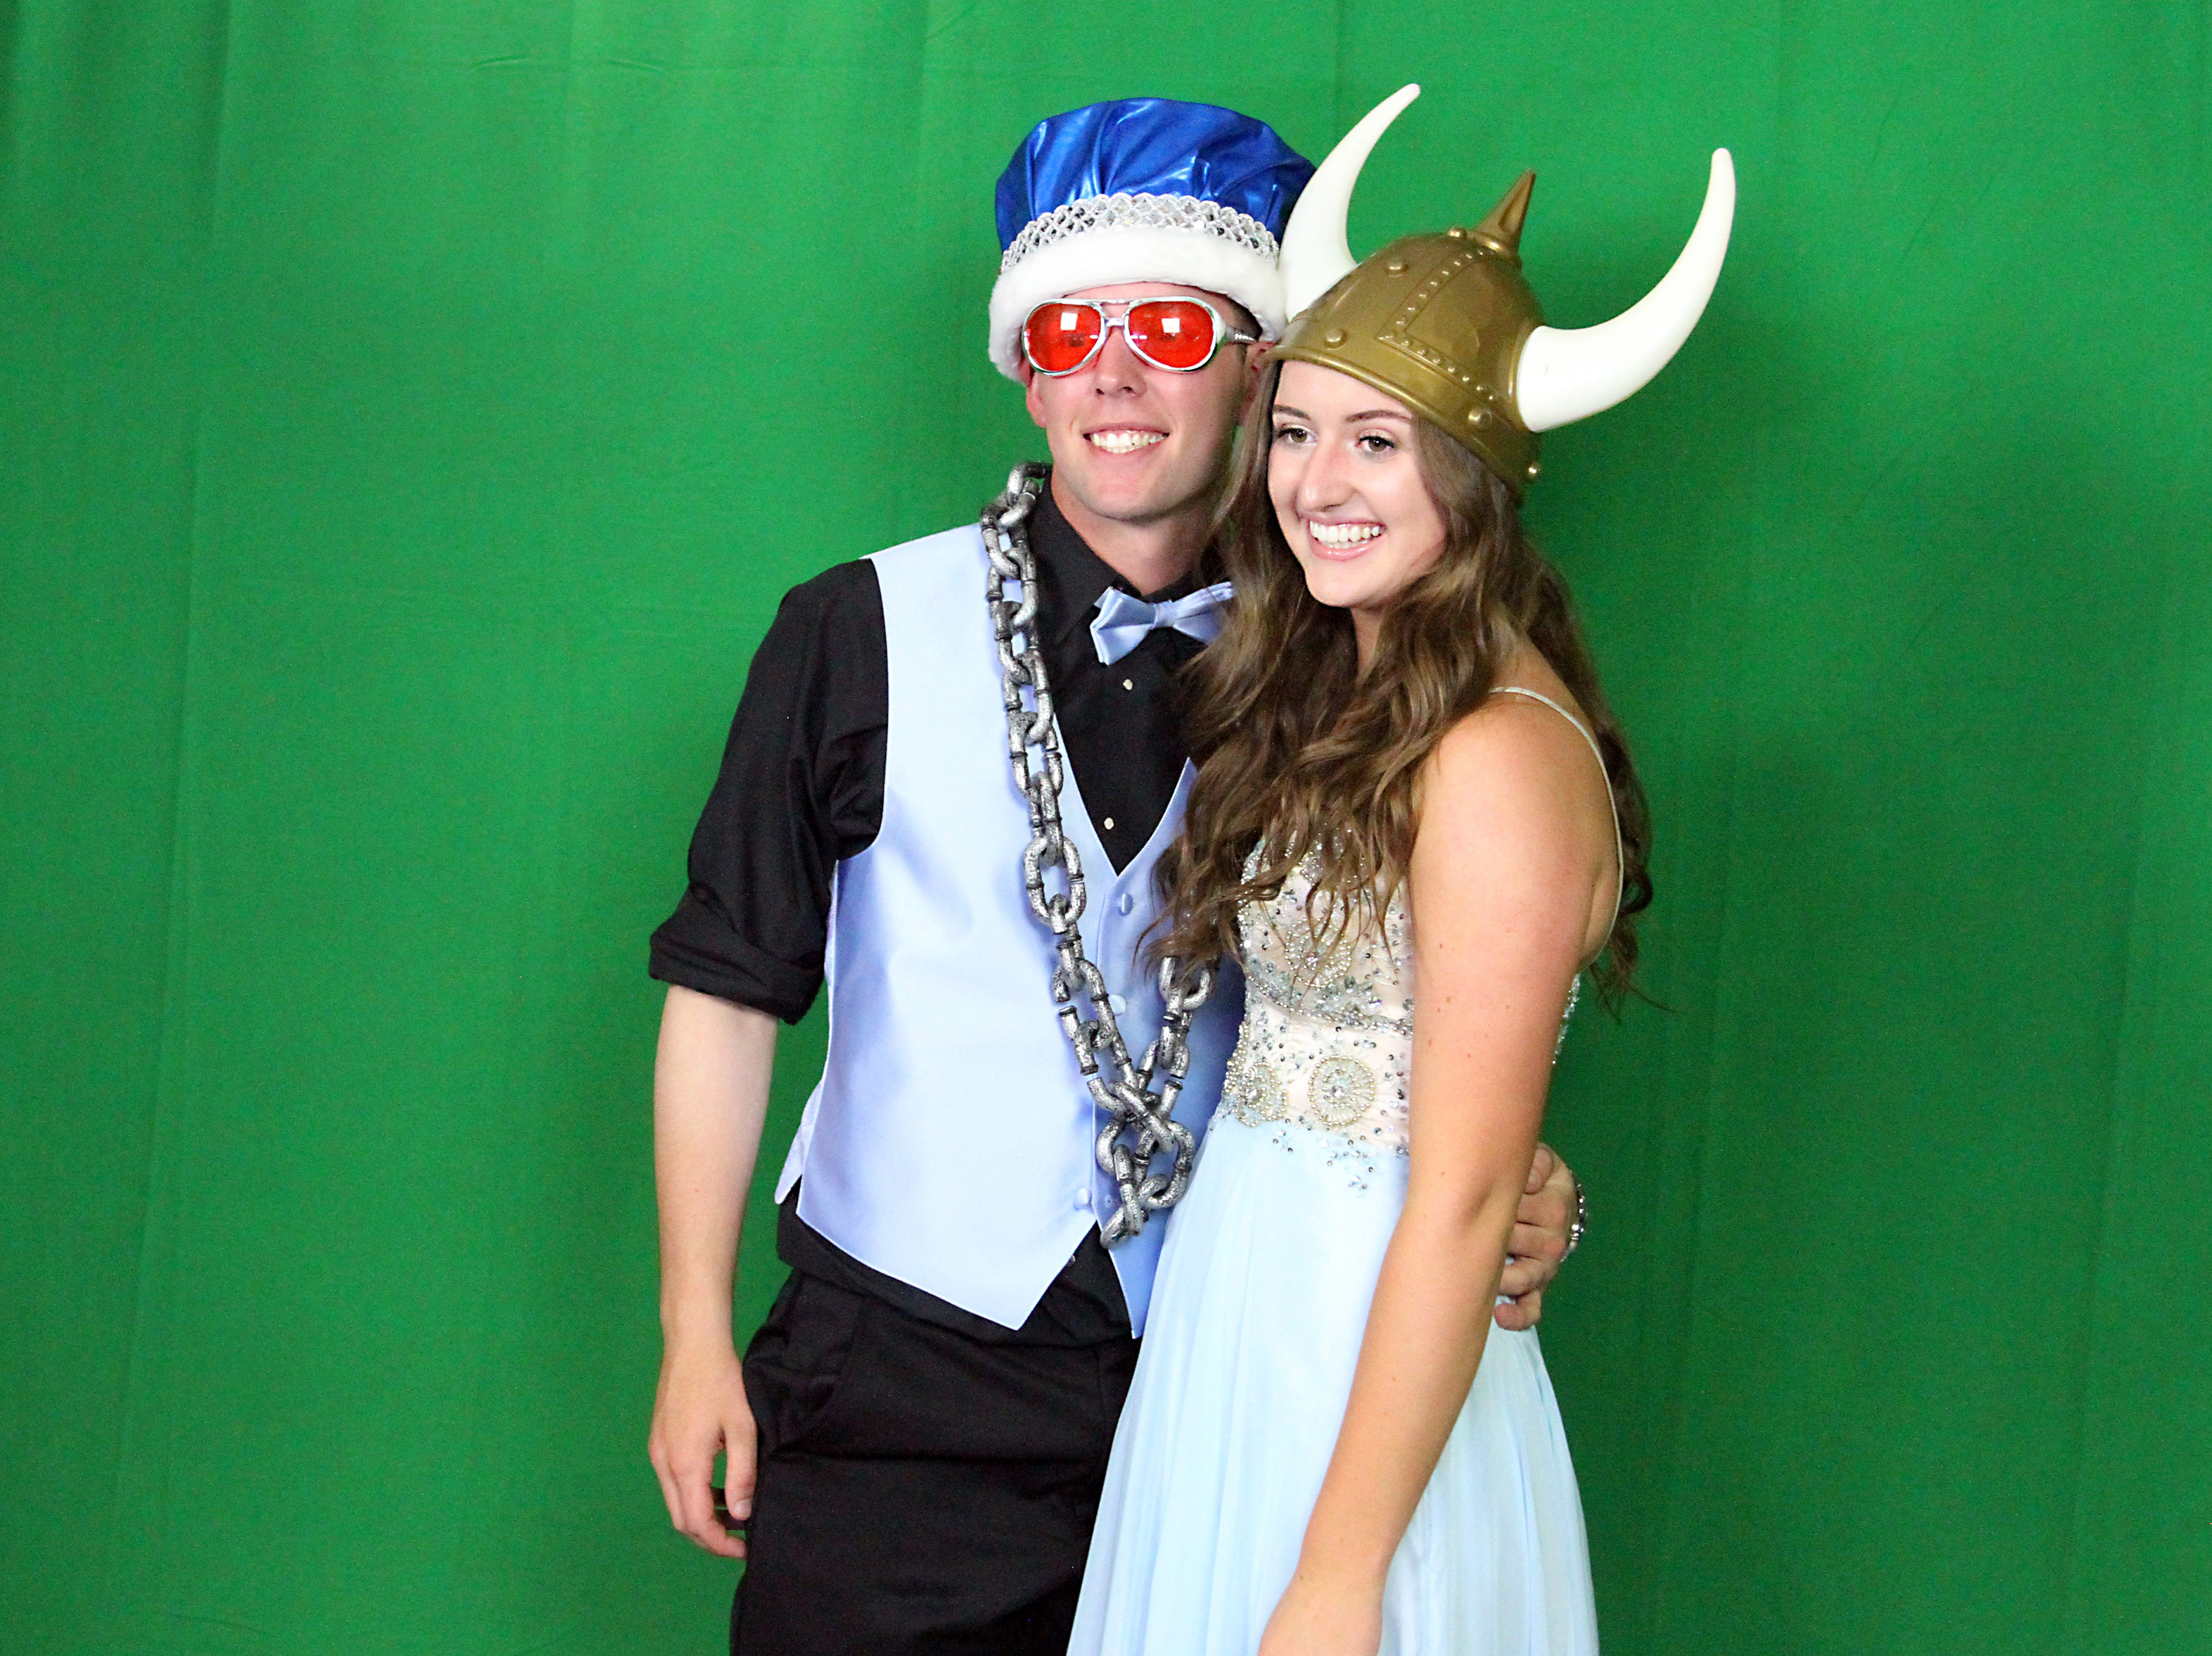 Joel Blocker / For the ColoradoanFort Collins High School seniors, Caleb Brlecic and Claire Freeman, pose in a front of a green screen while getting their pictures taken from a photo booth during the Fort Collins High School prom held at Canvas stadium Saturday night.